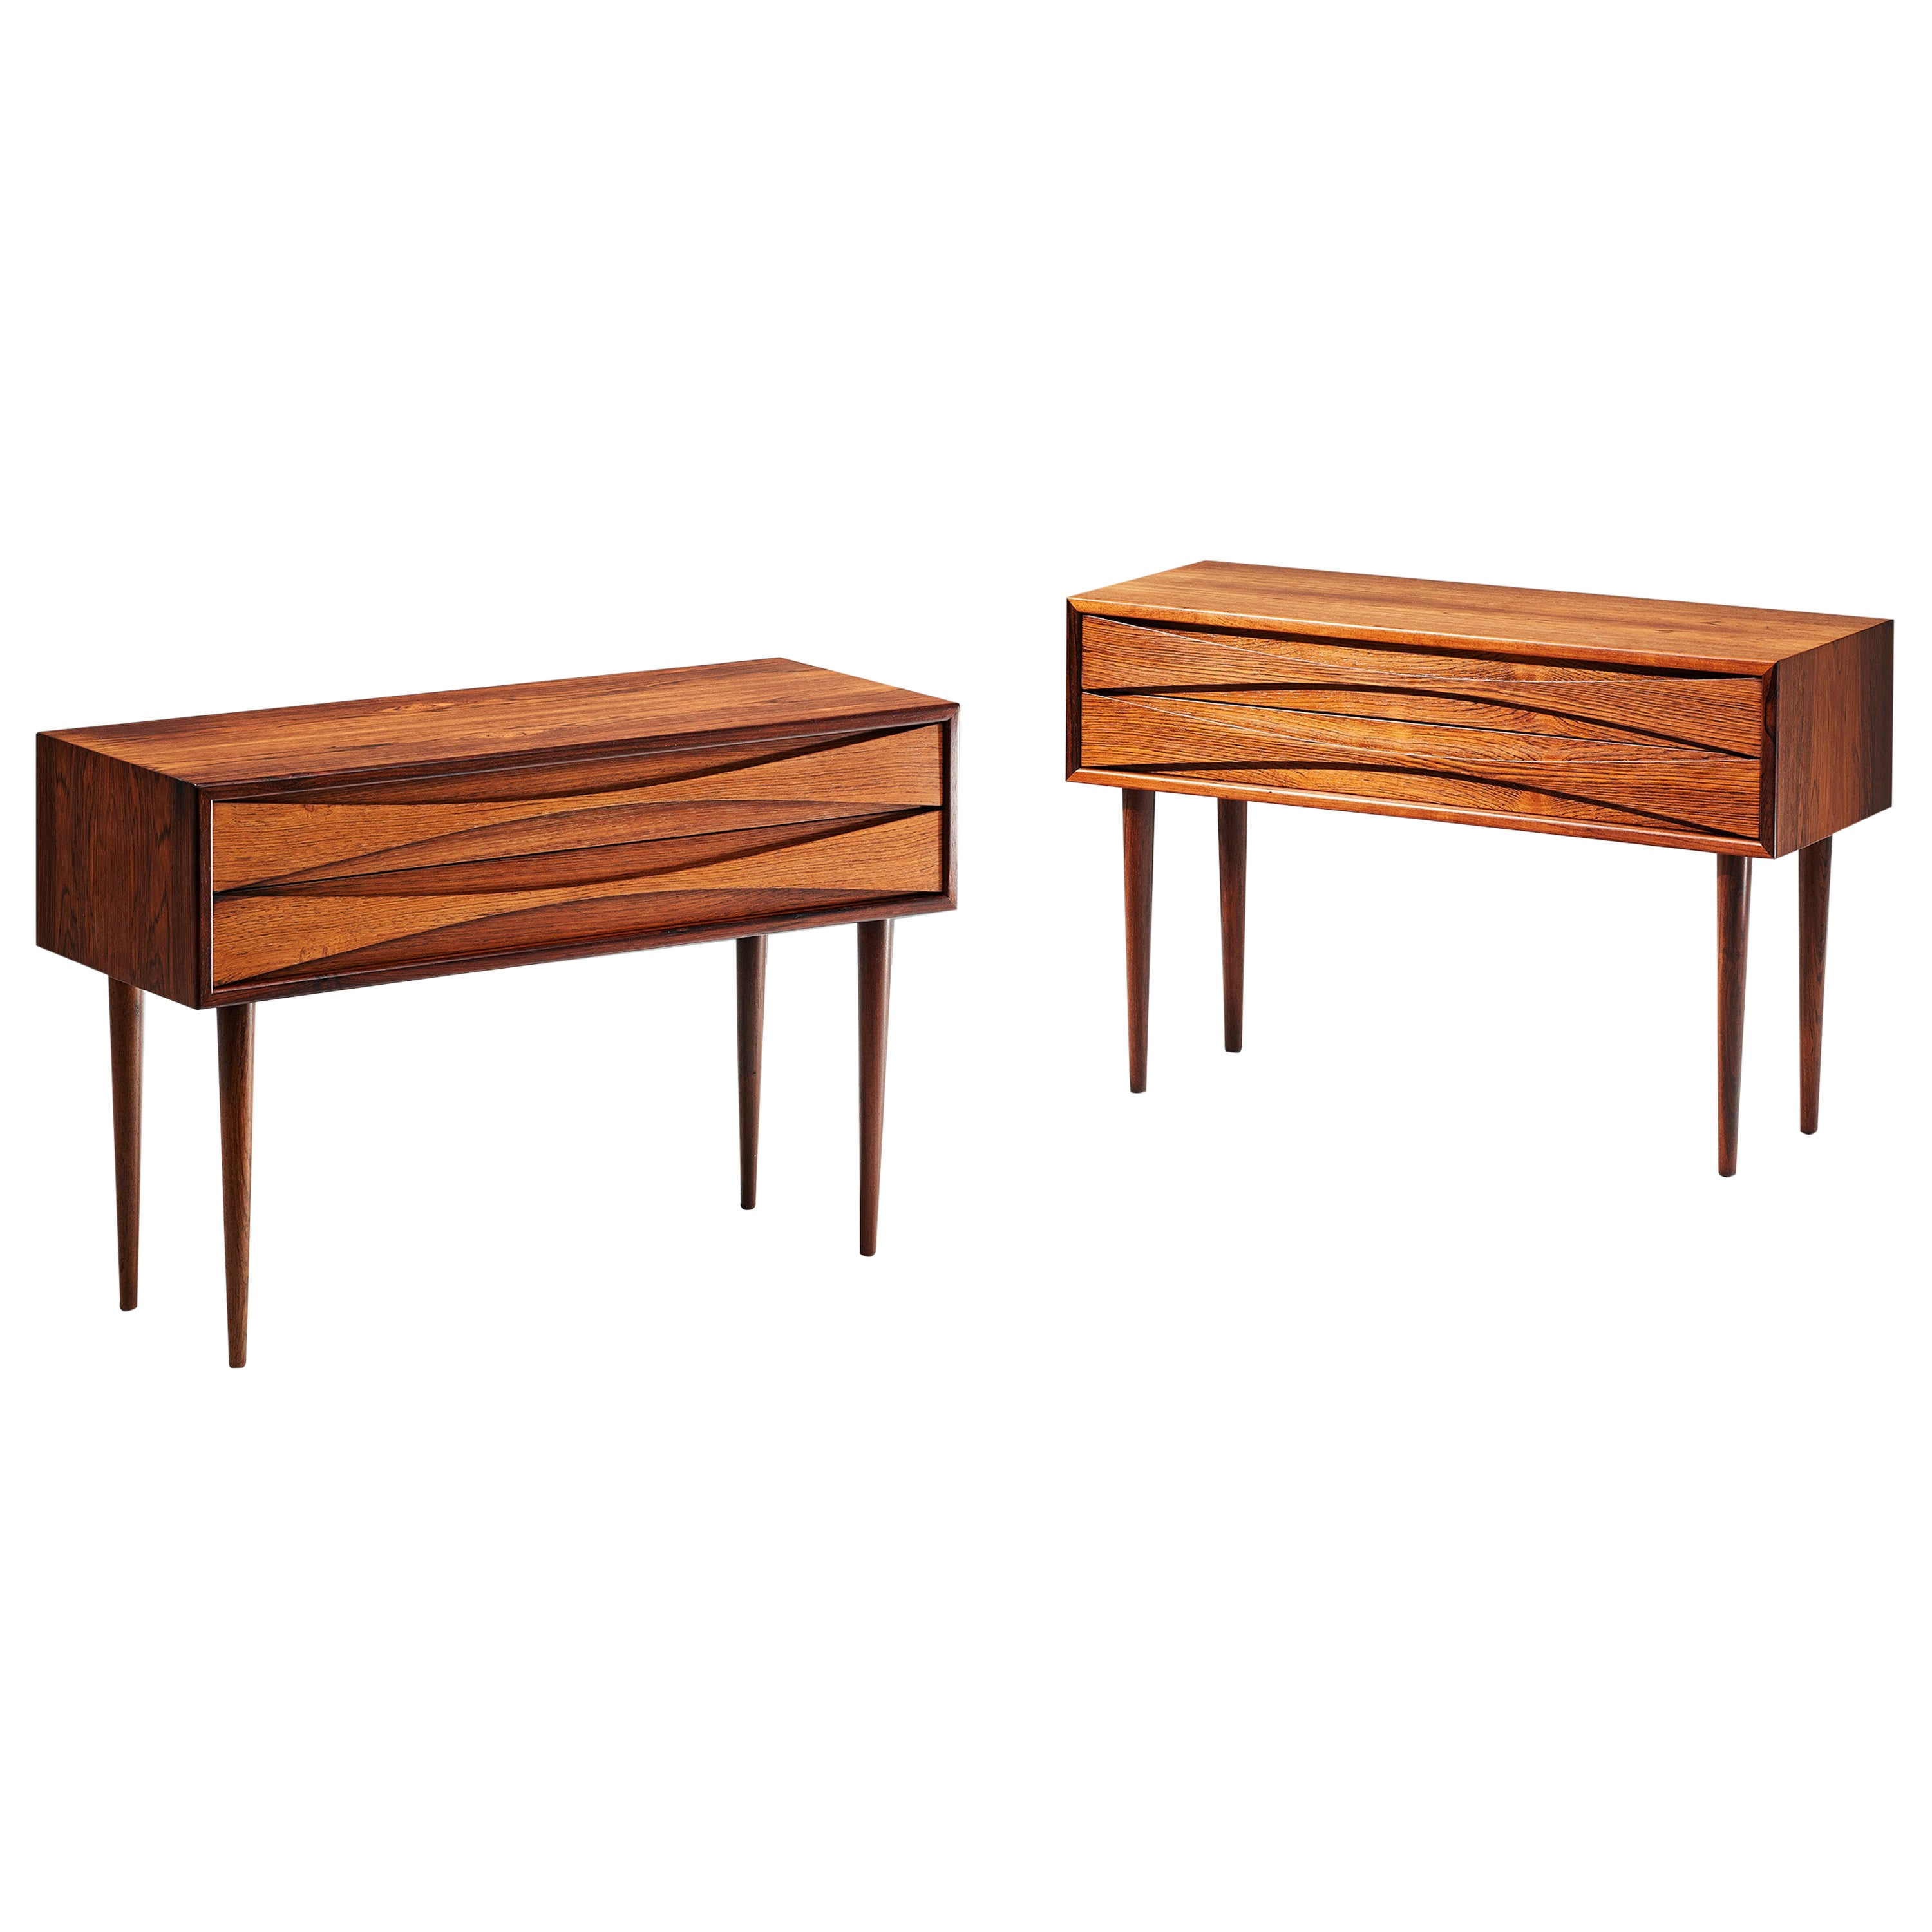 Niels Clausen Pair of 1960s Rosewood Bedside Cabinets